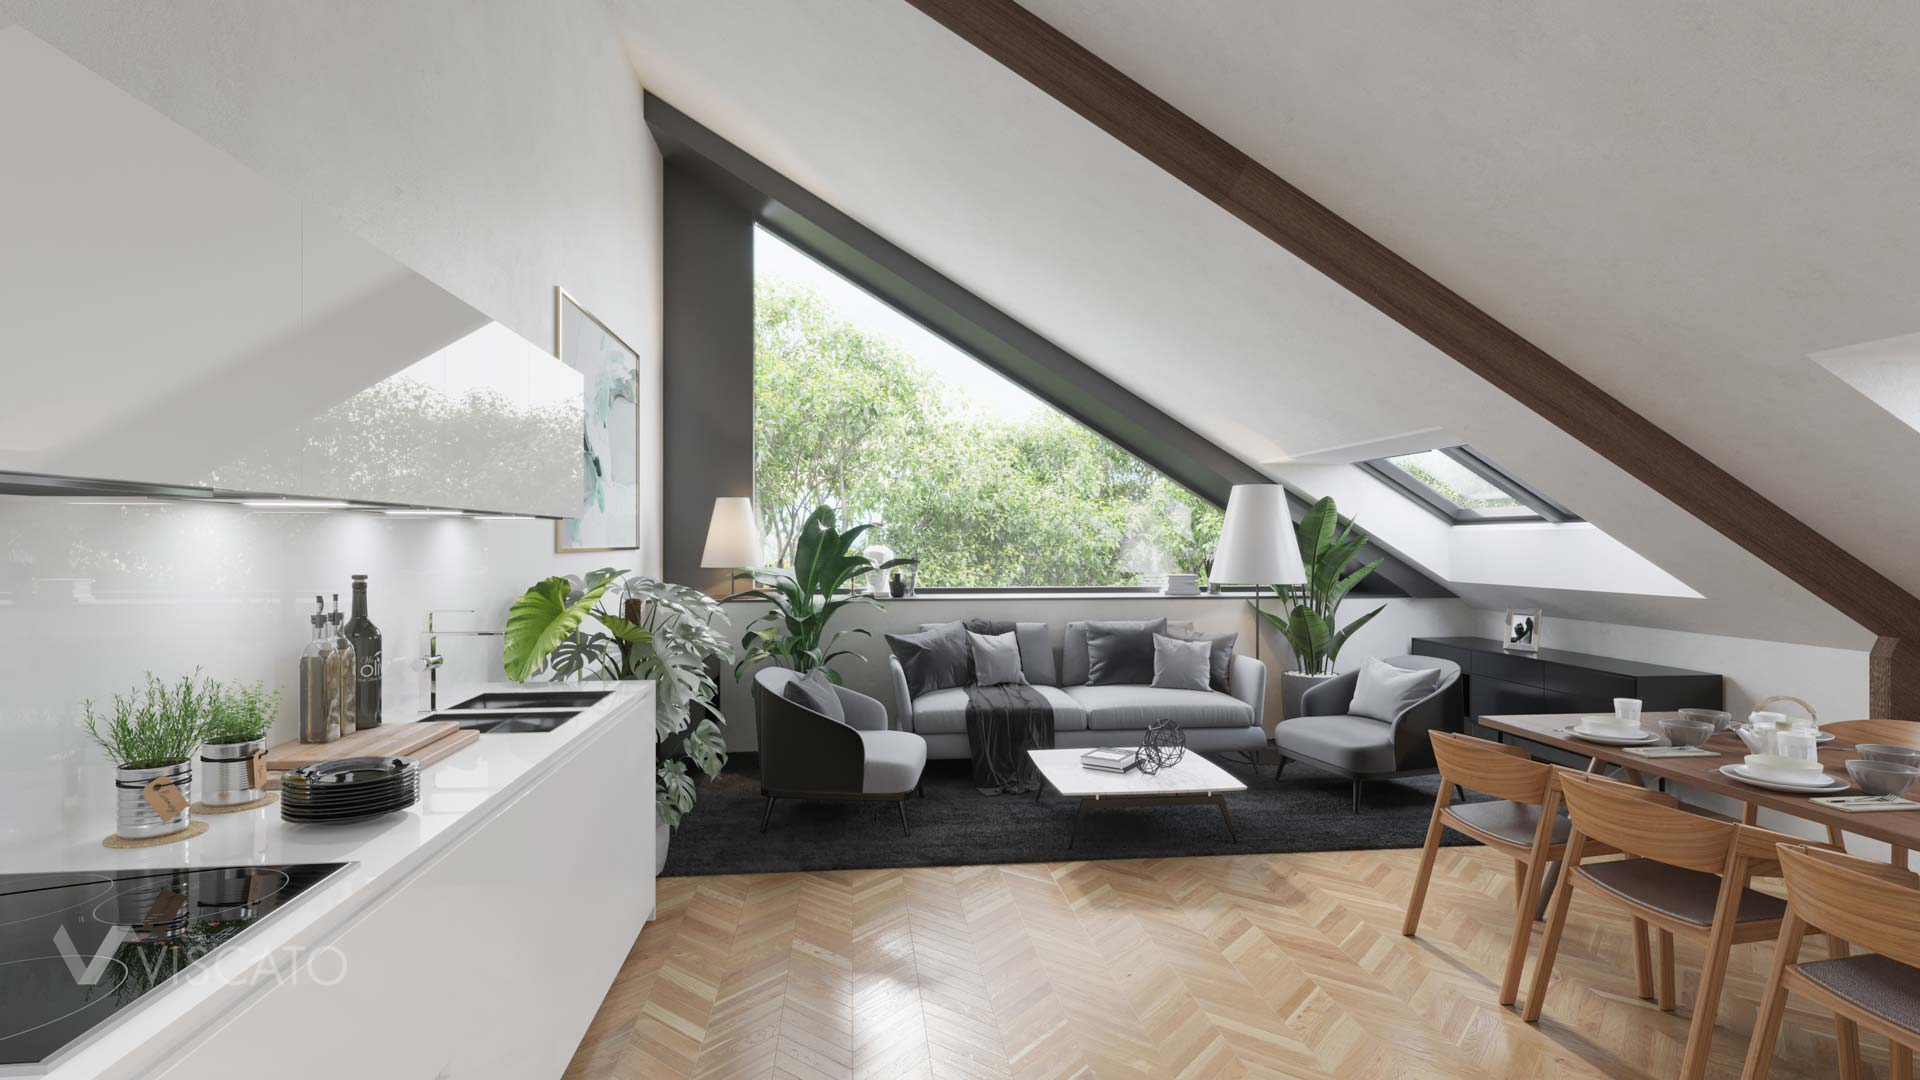 Triangular window, 3D Interior